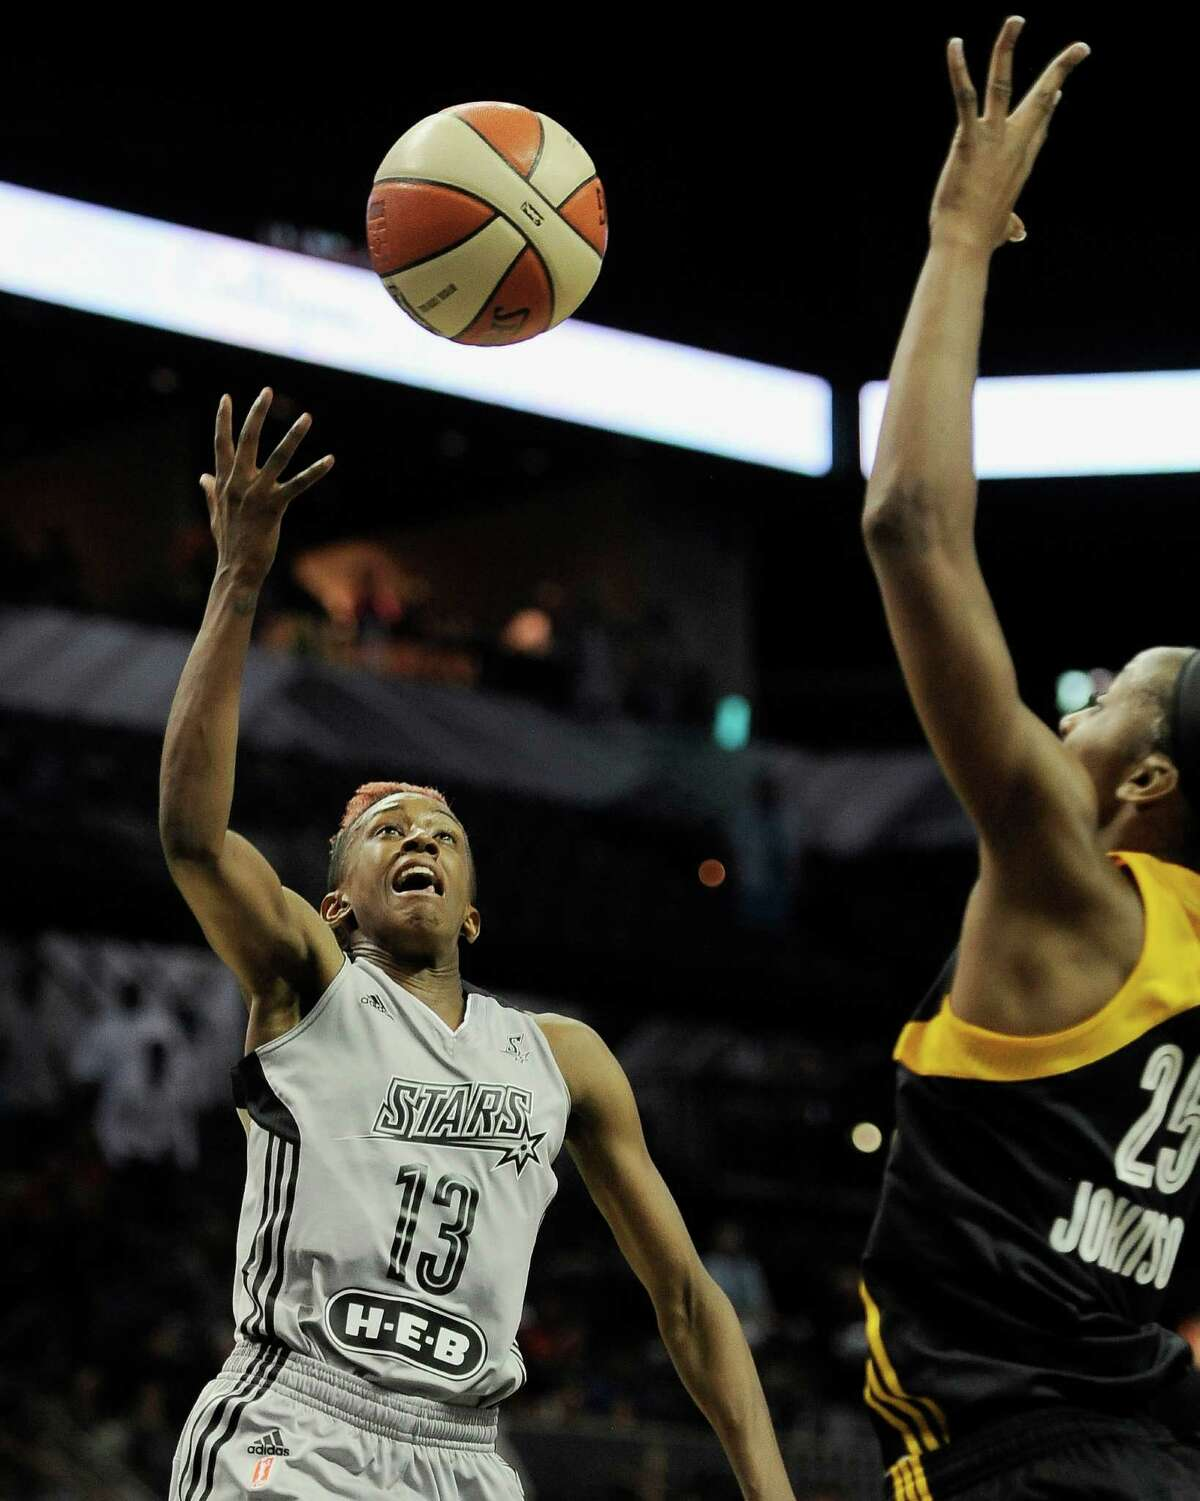 San Antonio Stars' Danielle Robinson, left, shoots the go-ahead basket over Tulsa Shock's Glory Johnson with 3.5 seconds left in a WNBA basketball game, Tuesday, July 22, 2014, in San Antonio. San Antonio won 95-93. (Darren Abate/For the Express-News)